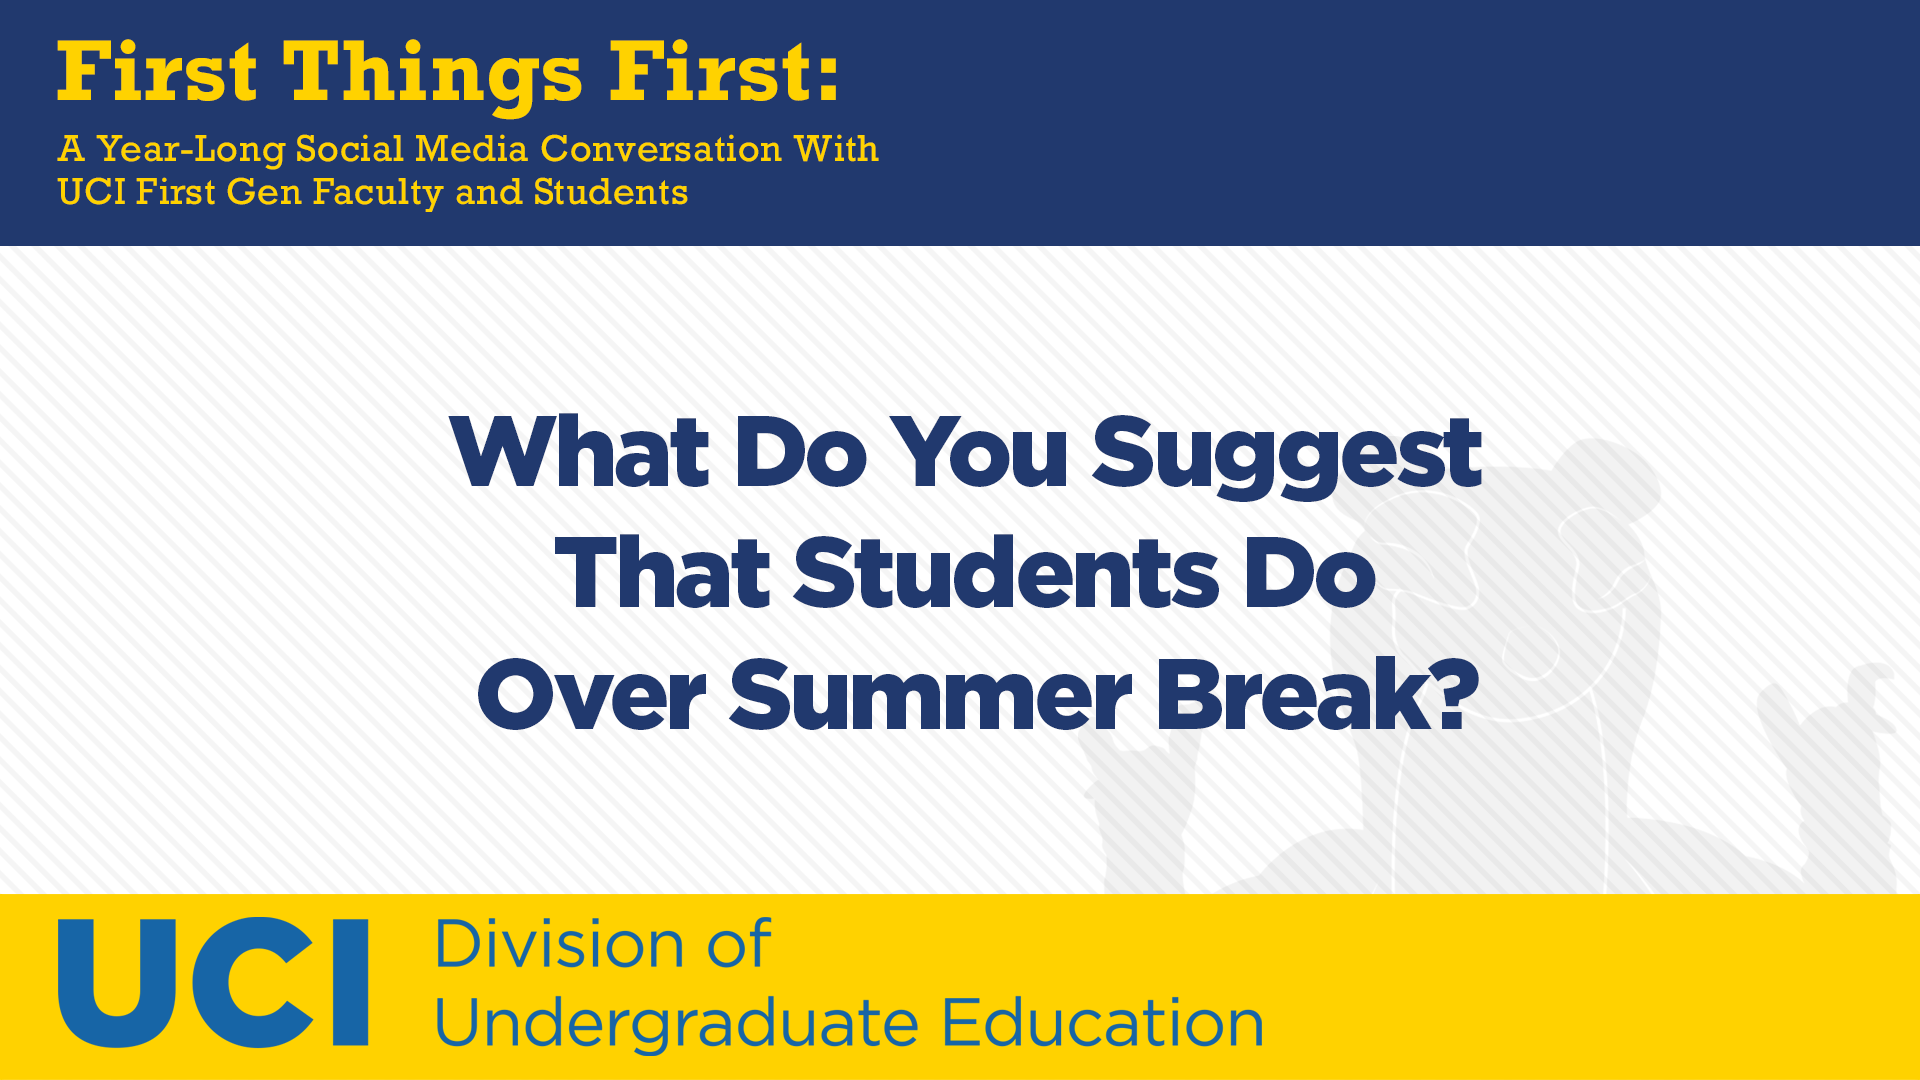 What Do You Suggest That Students Do Over Summer Break?